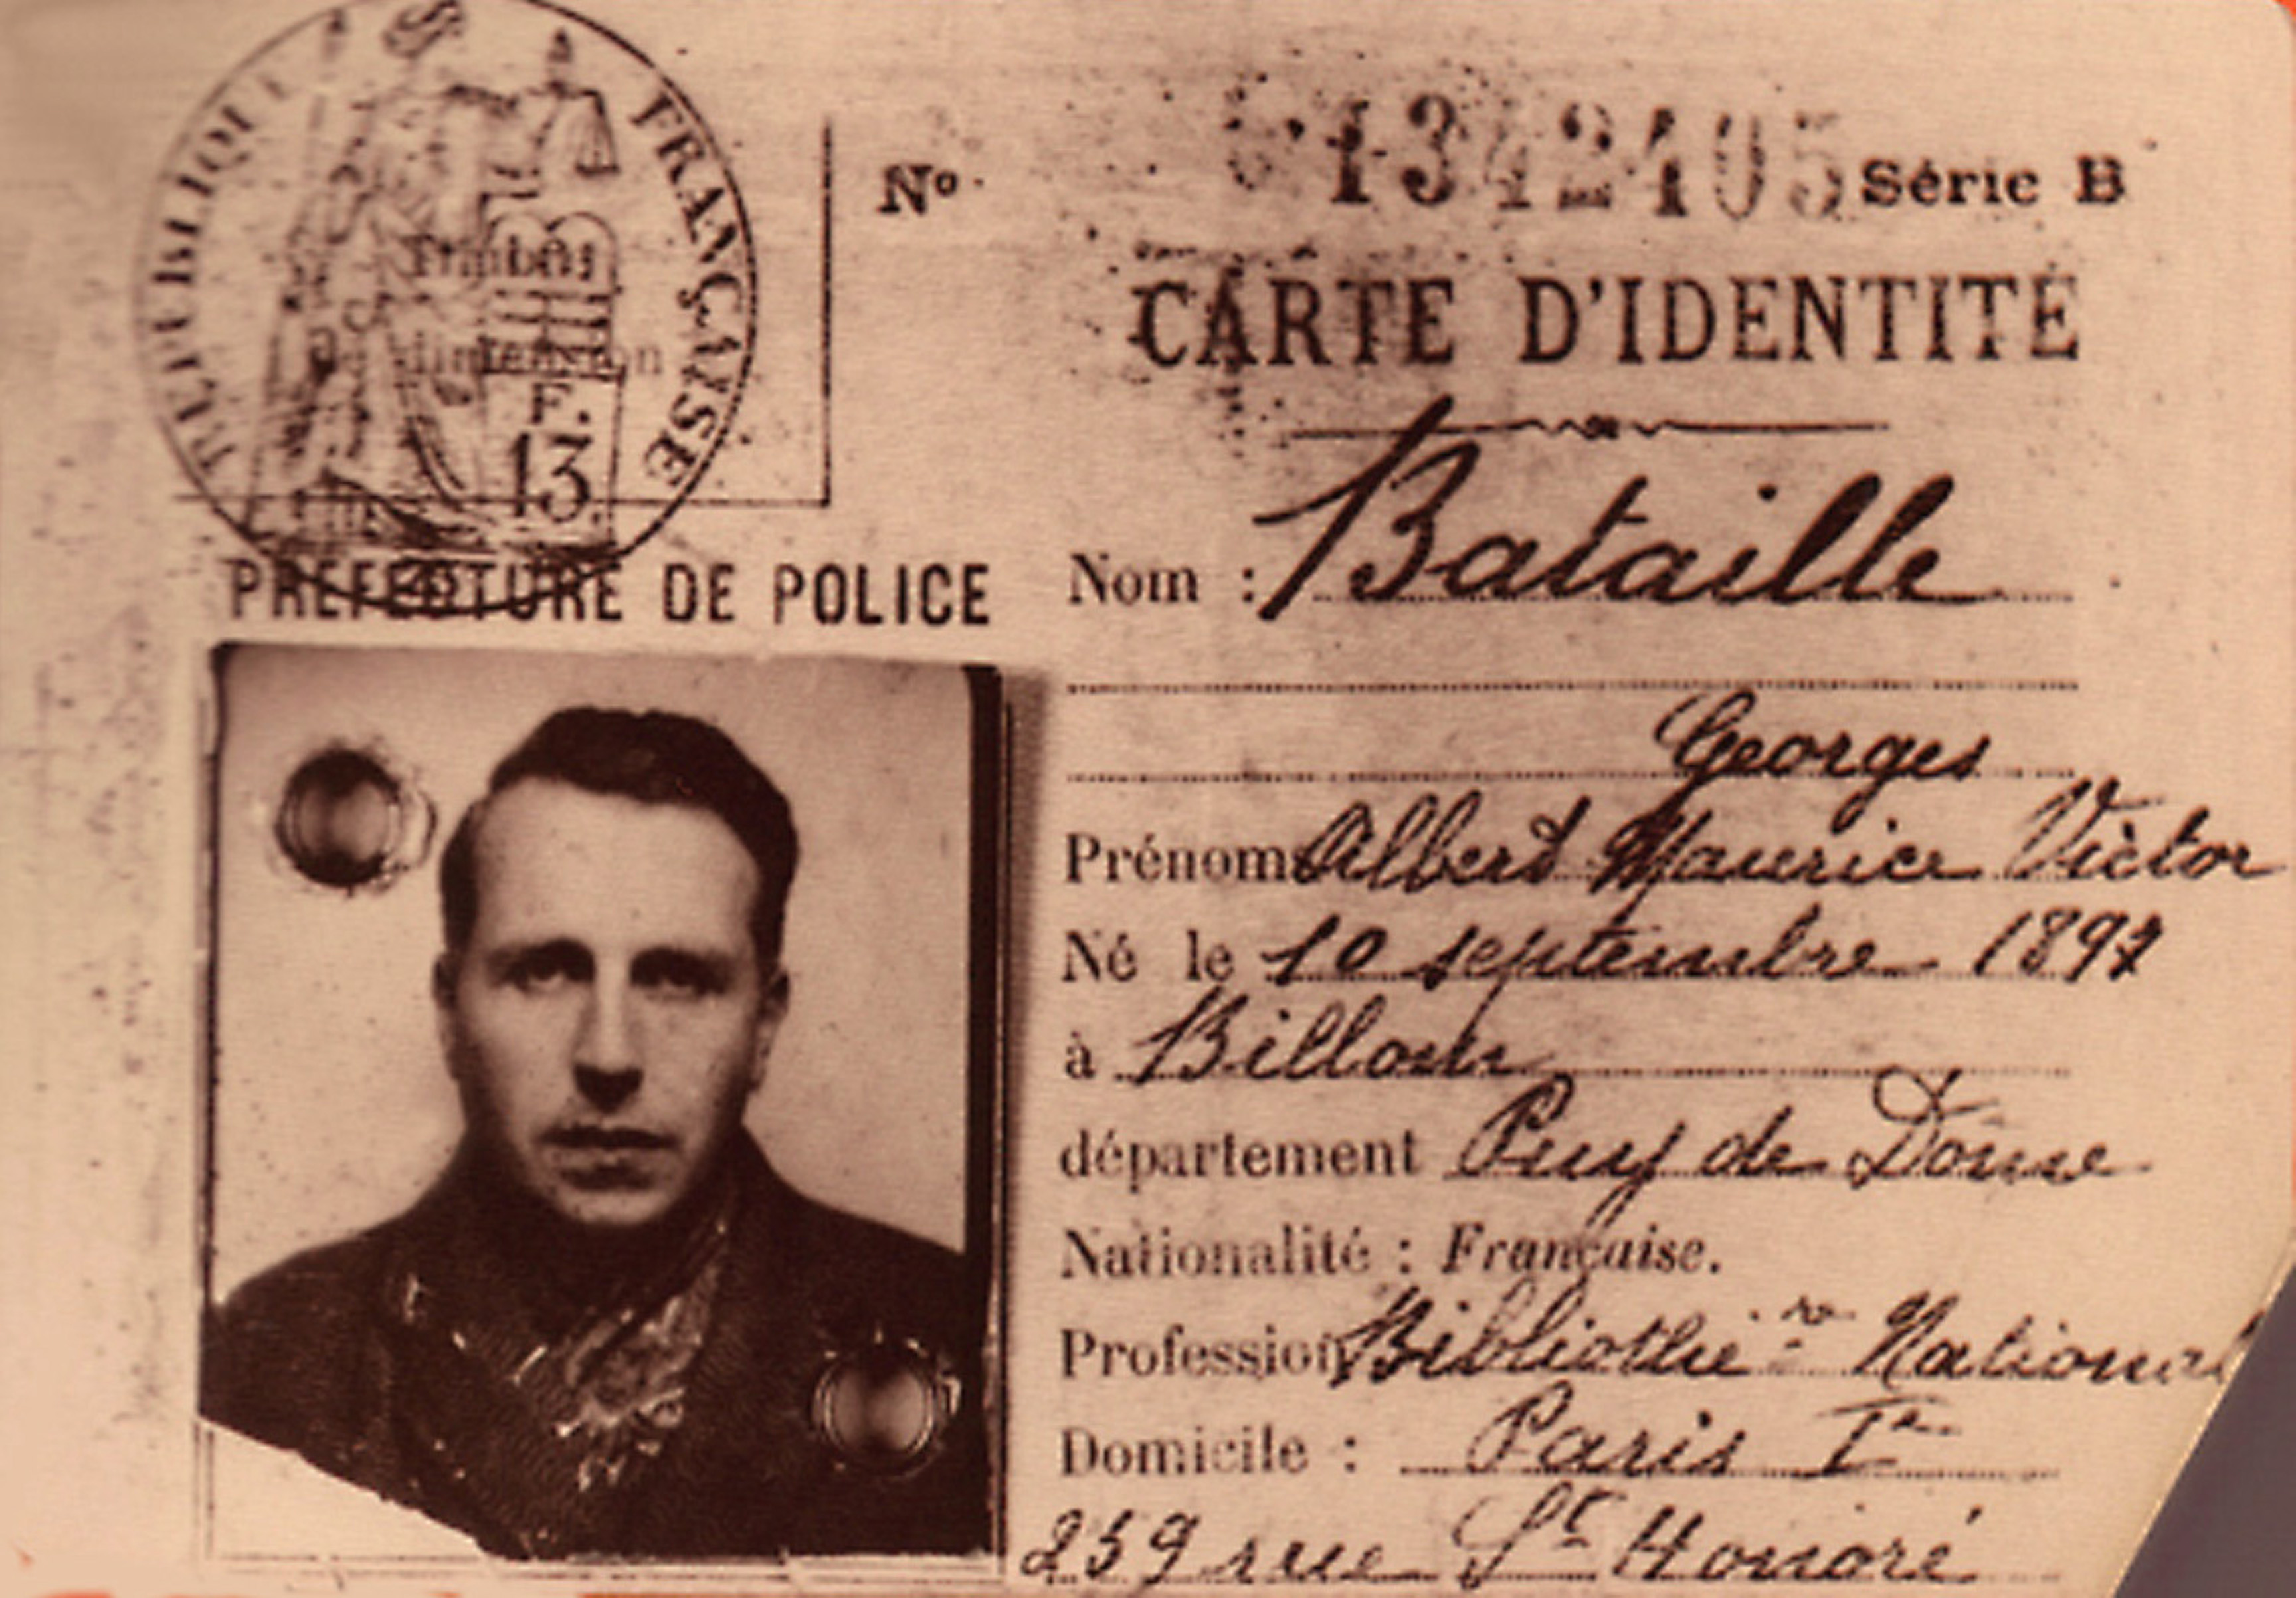 carte d identité photo File:Carte d'identité de Bataille 1940.   Wikimedia Commons